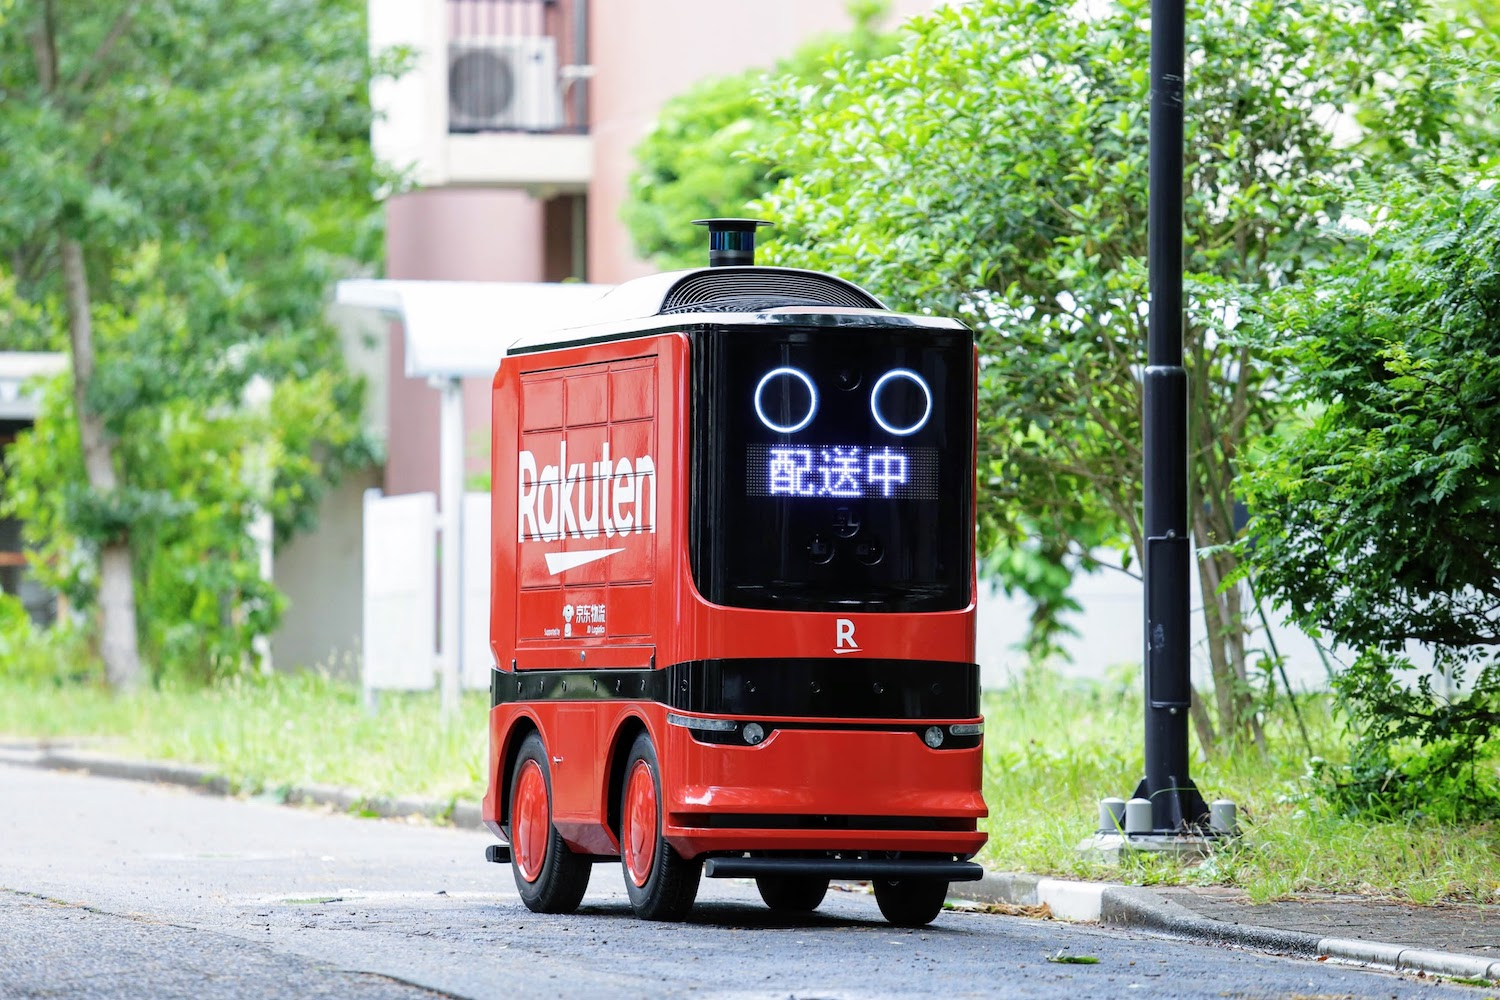 Delivering the future: Delivery robot turns heads at Chiba